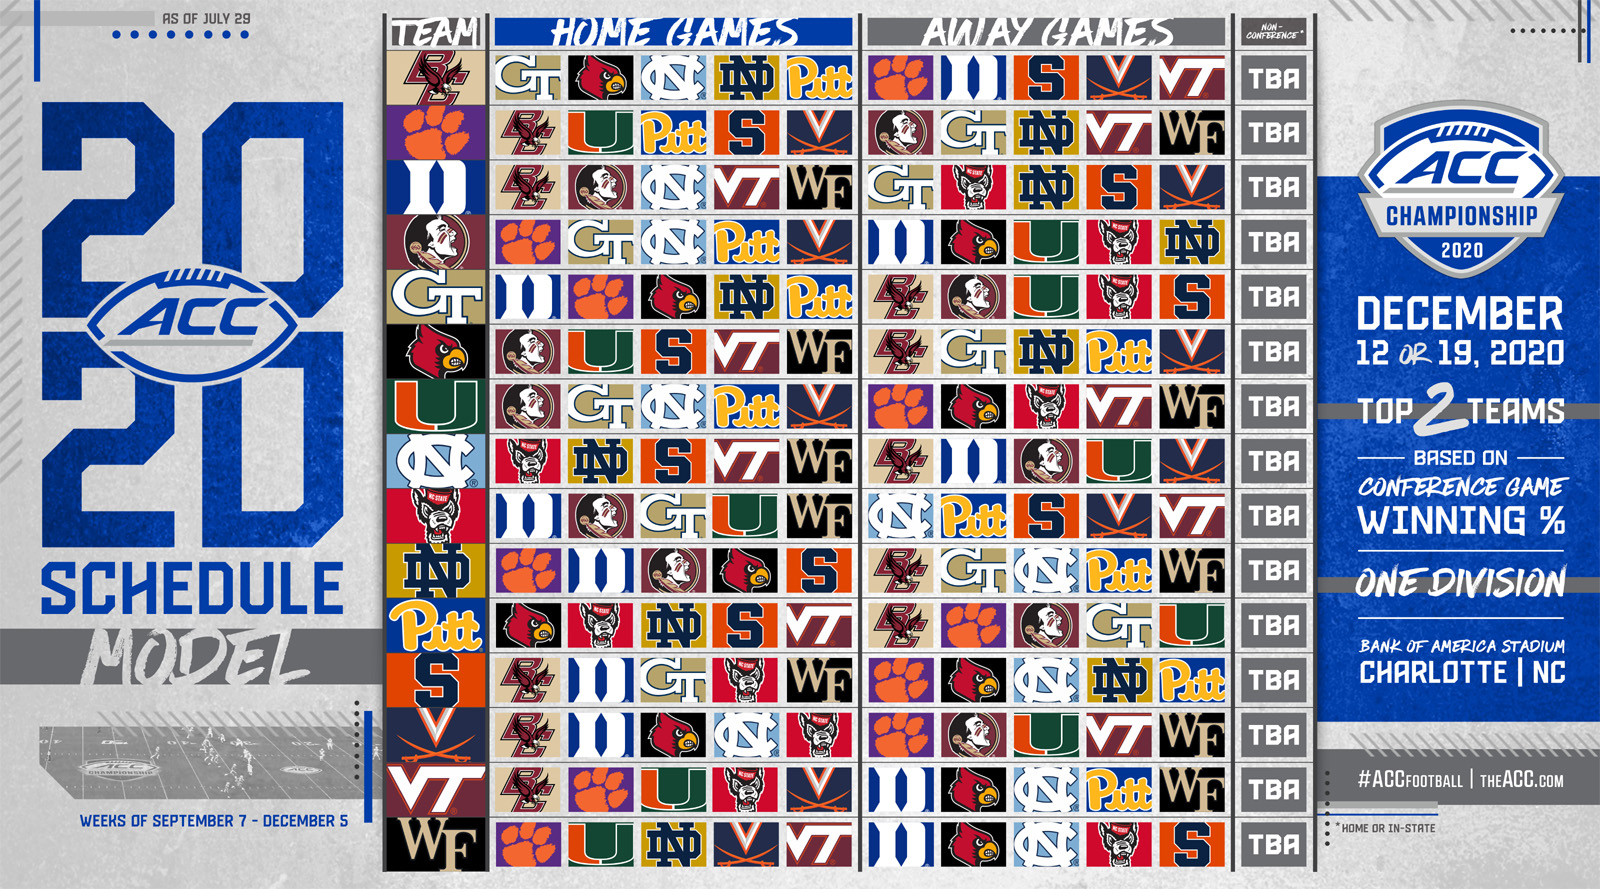 Virginia and ACC schedules.